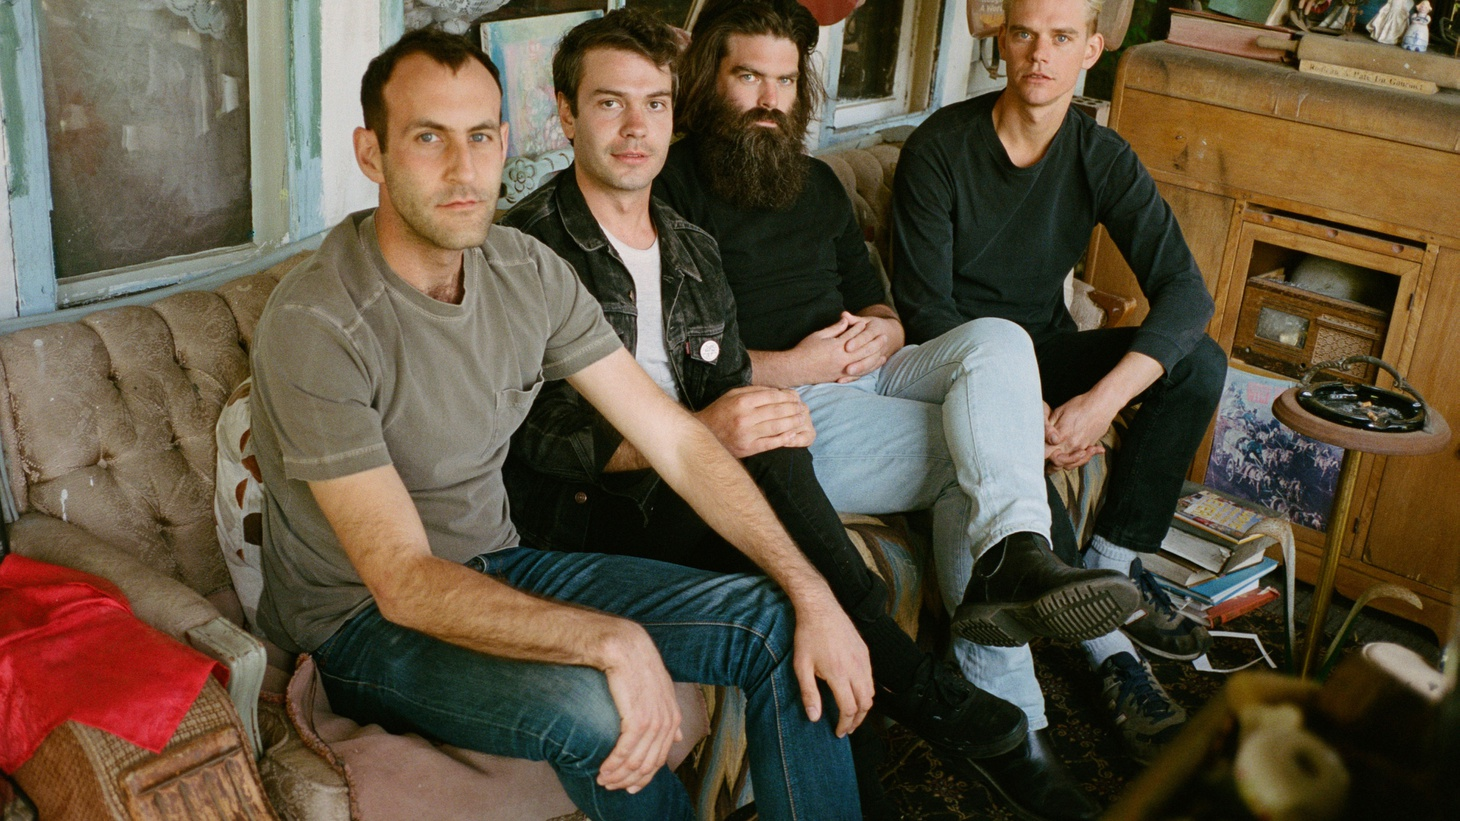 The band now known as Preoccupations (formerly Viet Cong) have released a ferocious rock record as their self-titled debut.